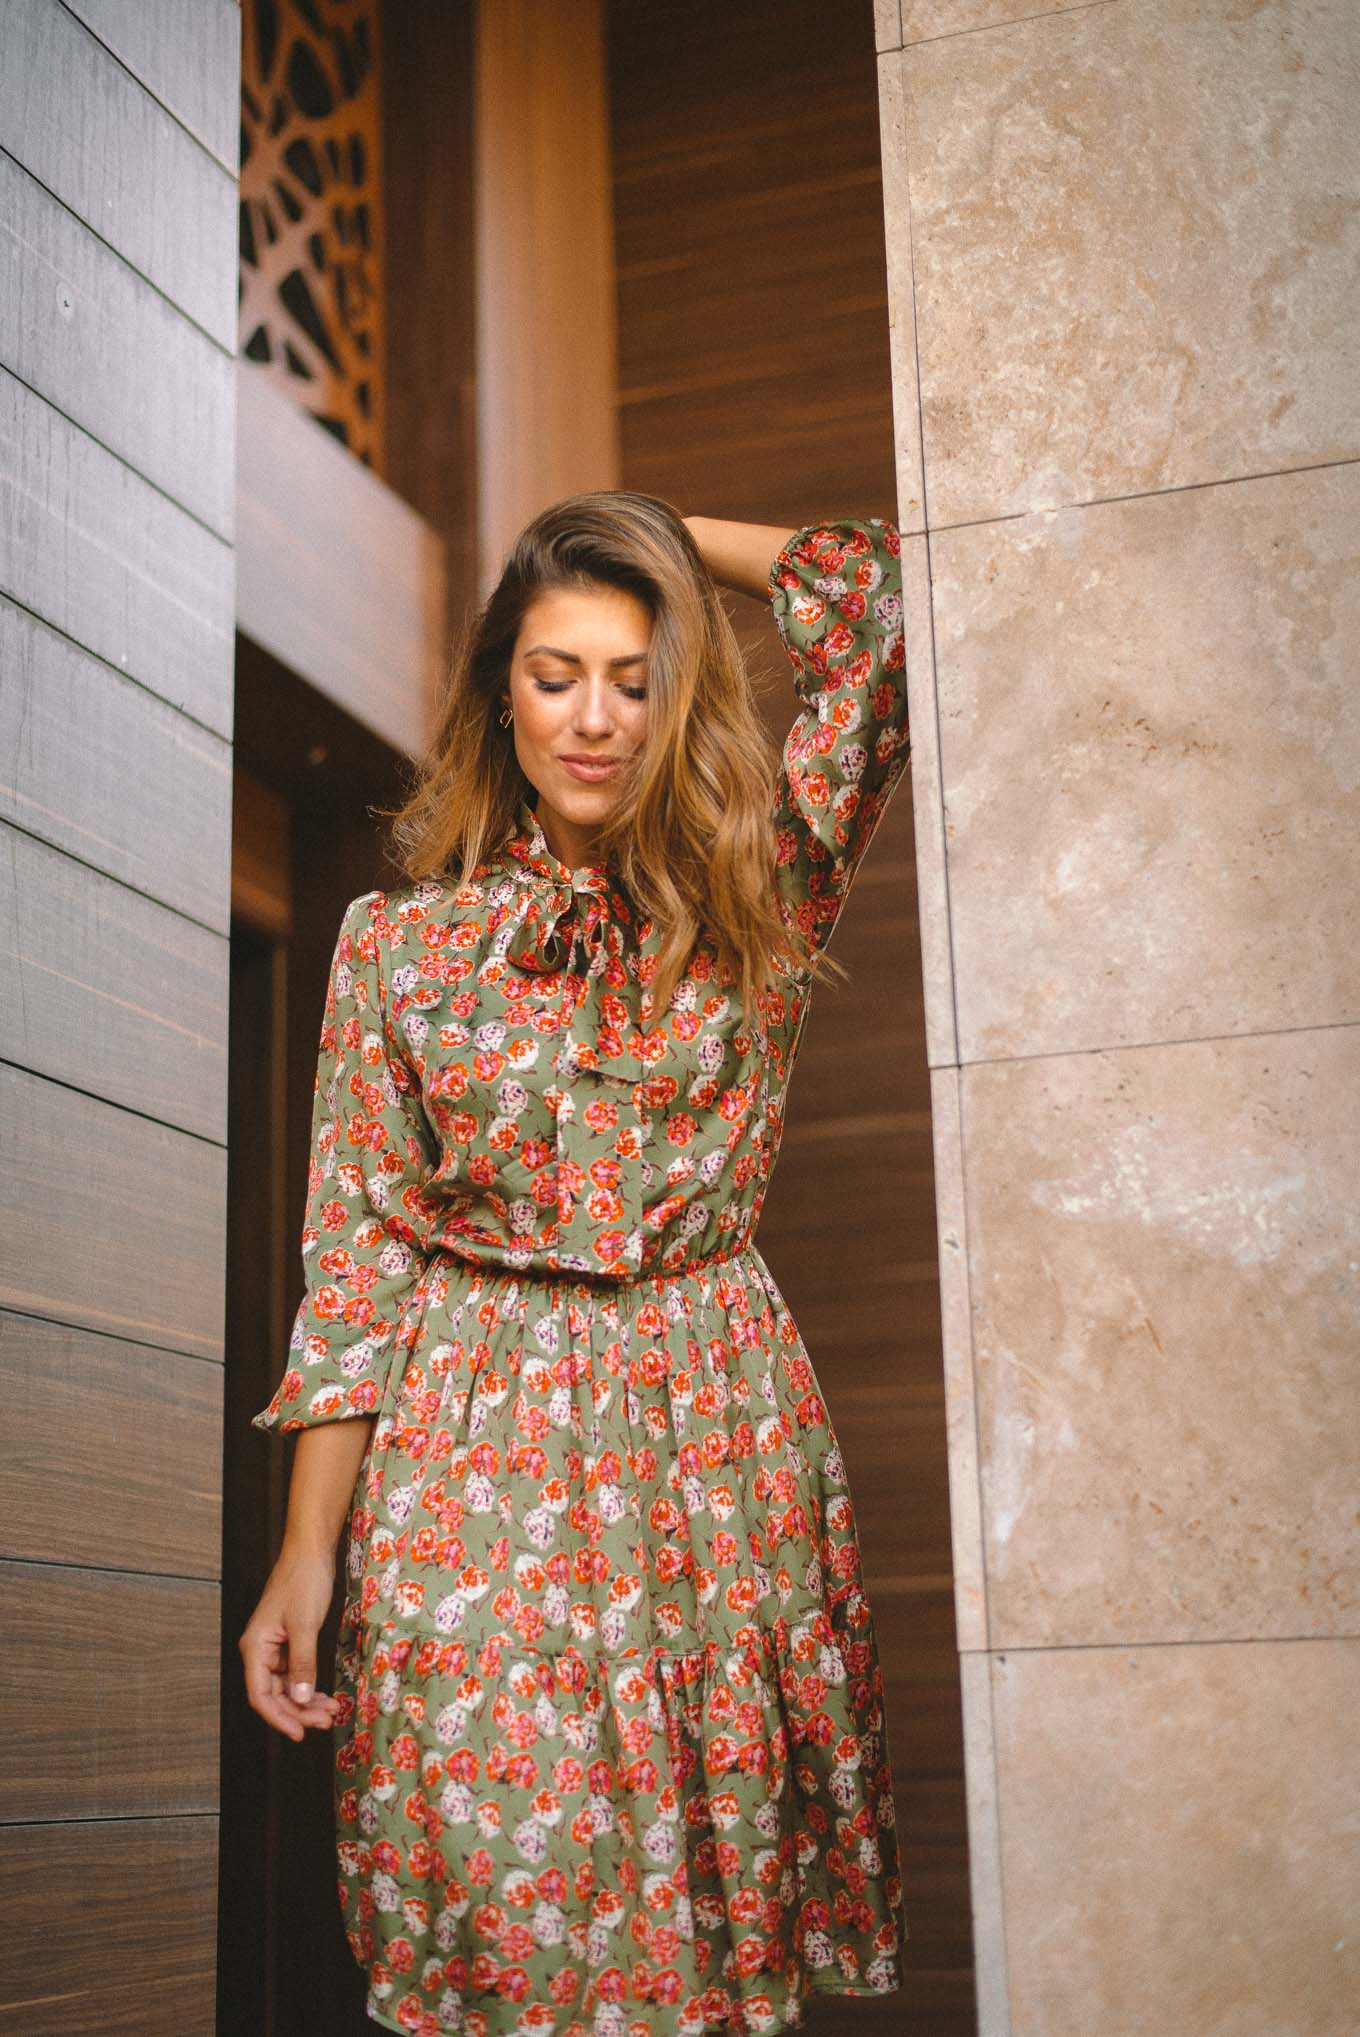 Marie dress in floral print